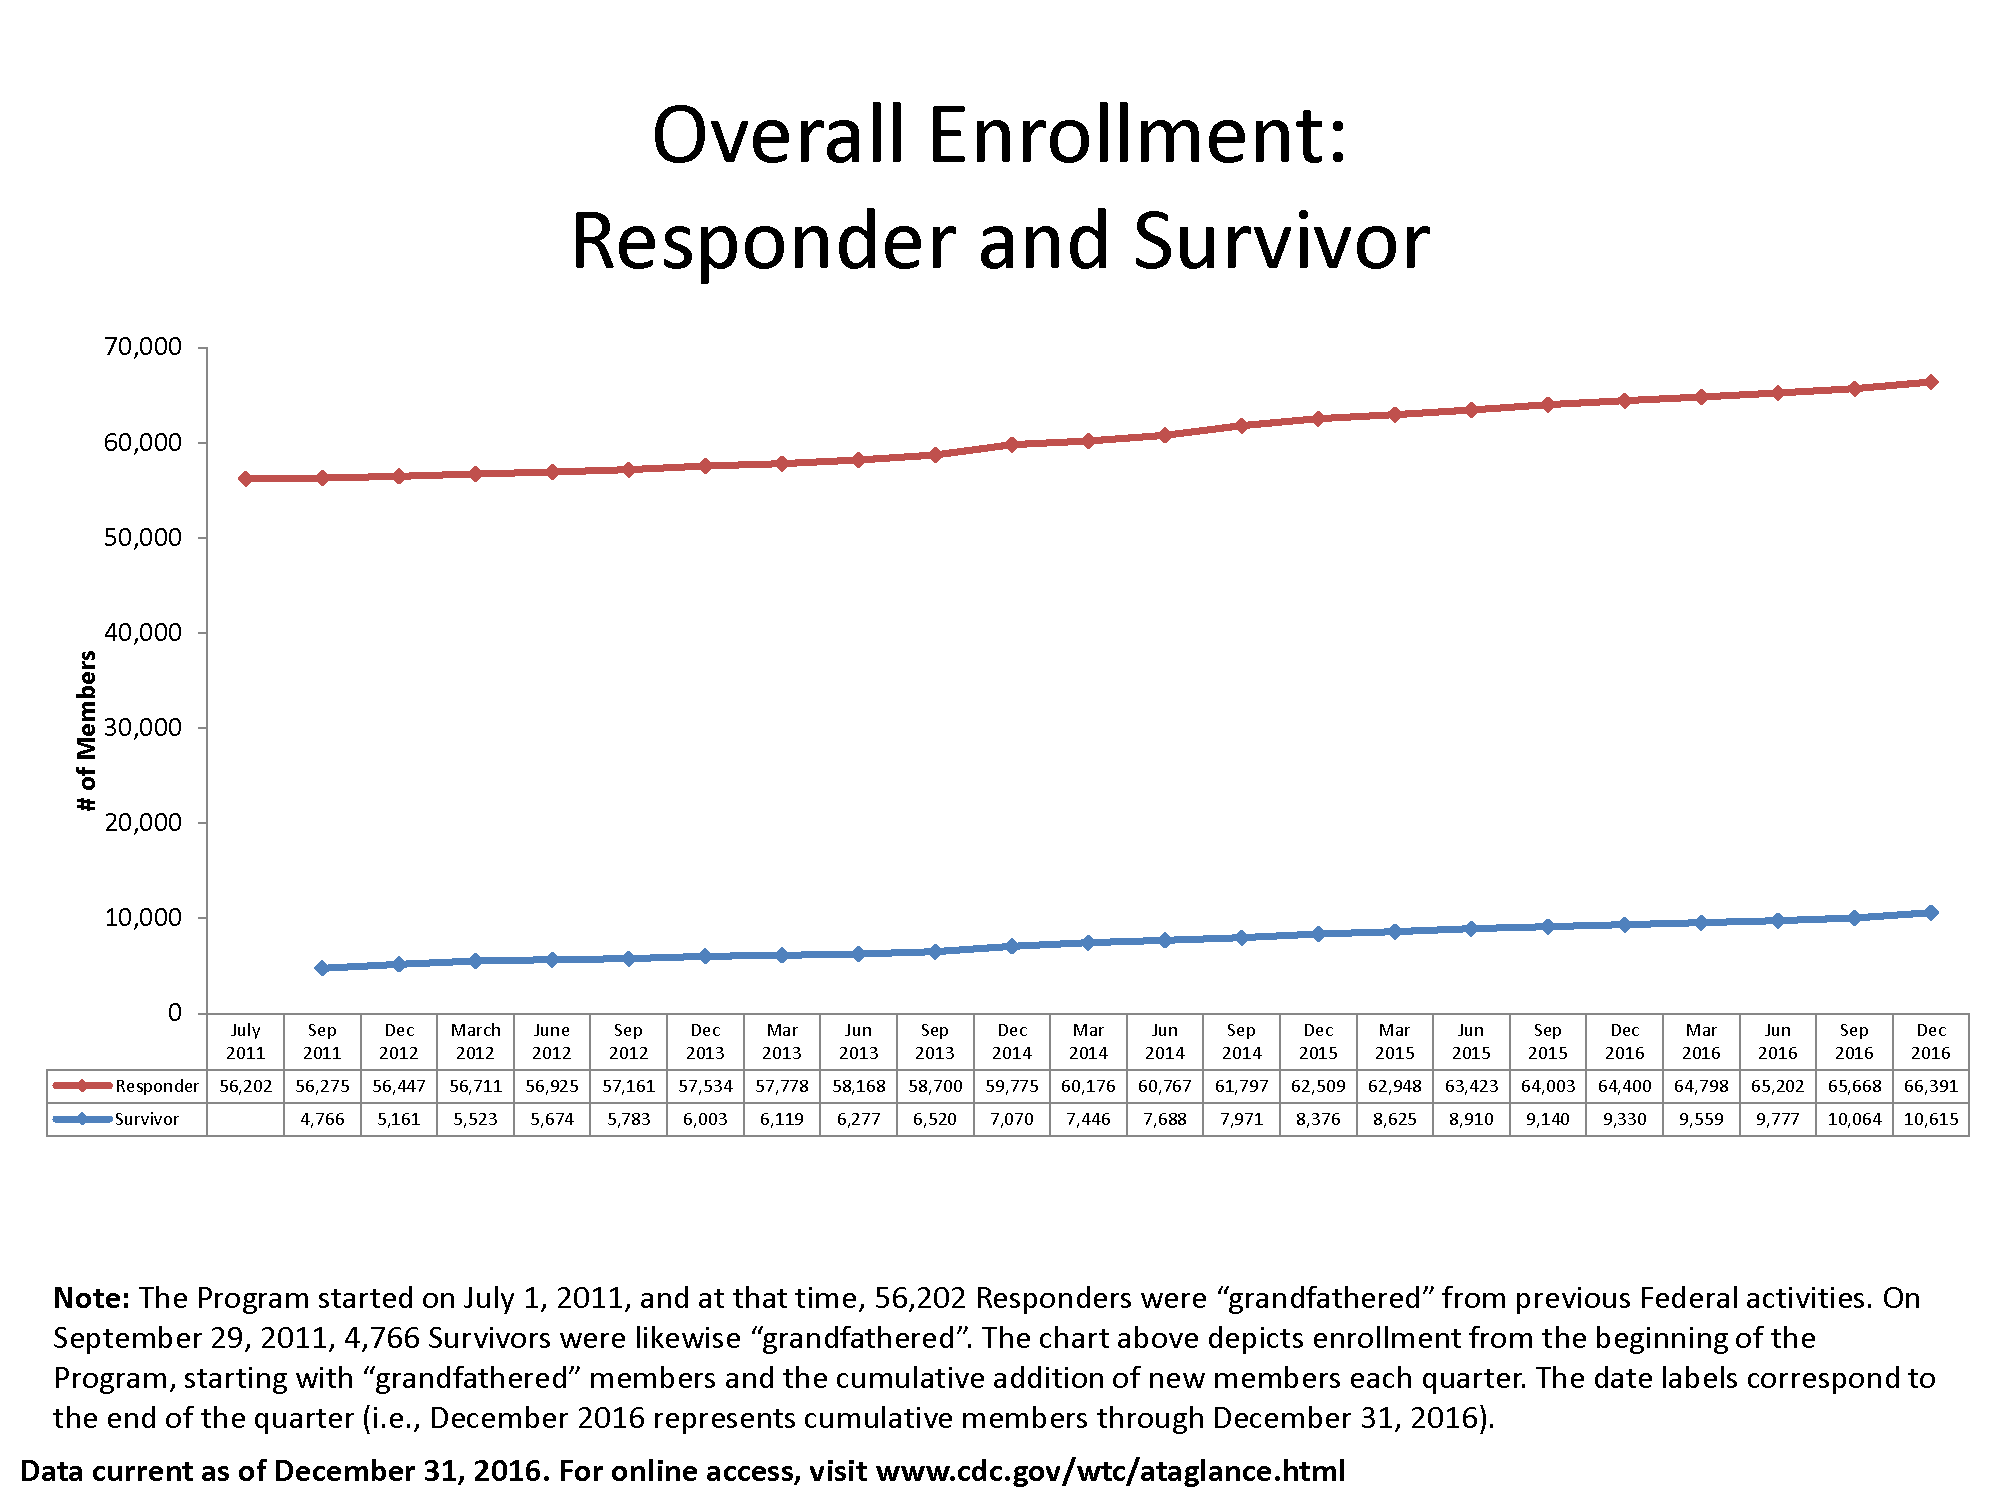 Line graph of data in table below showing enrollment in the World Trade Center Health Program by Responder and Survivor from July 2011 through December 2016.